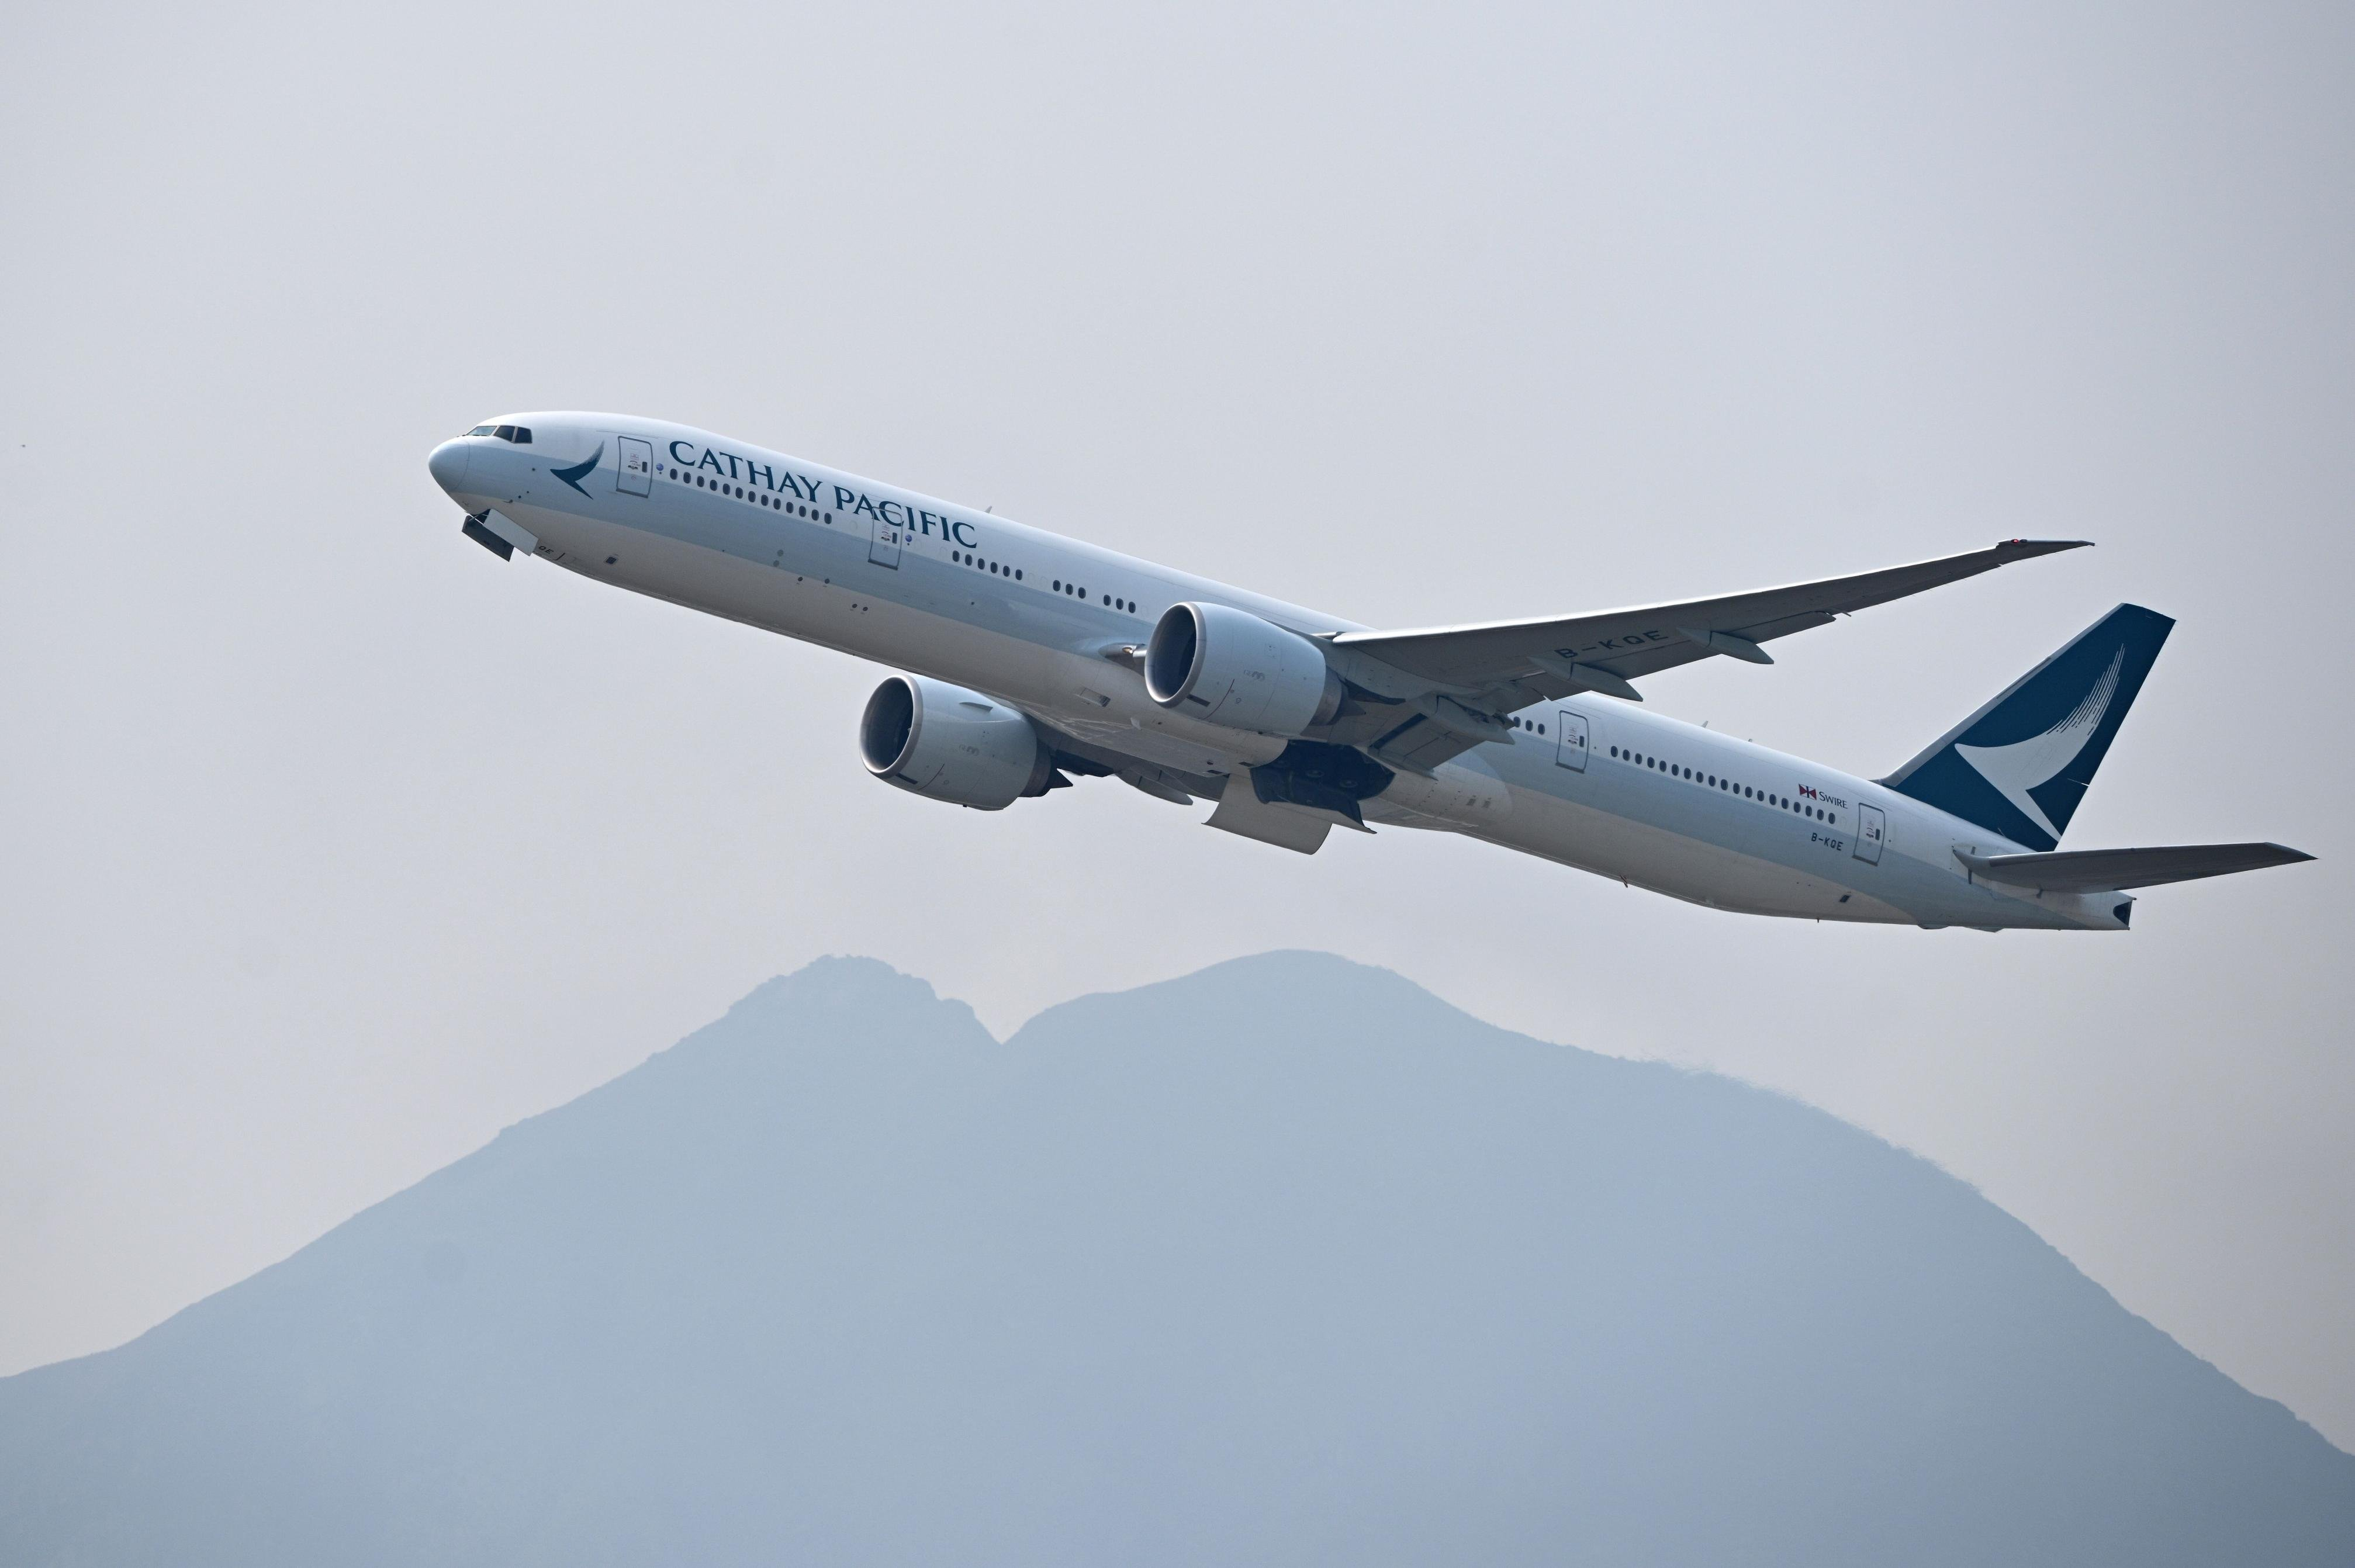 Cathay Pacific's crisis just got even uglier